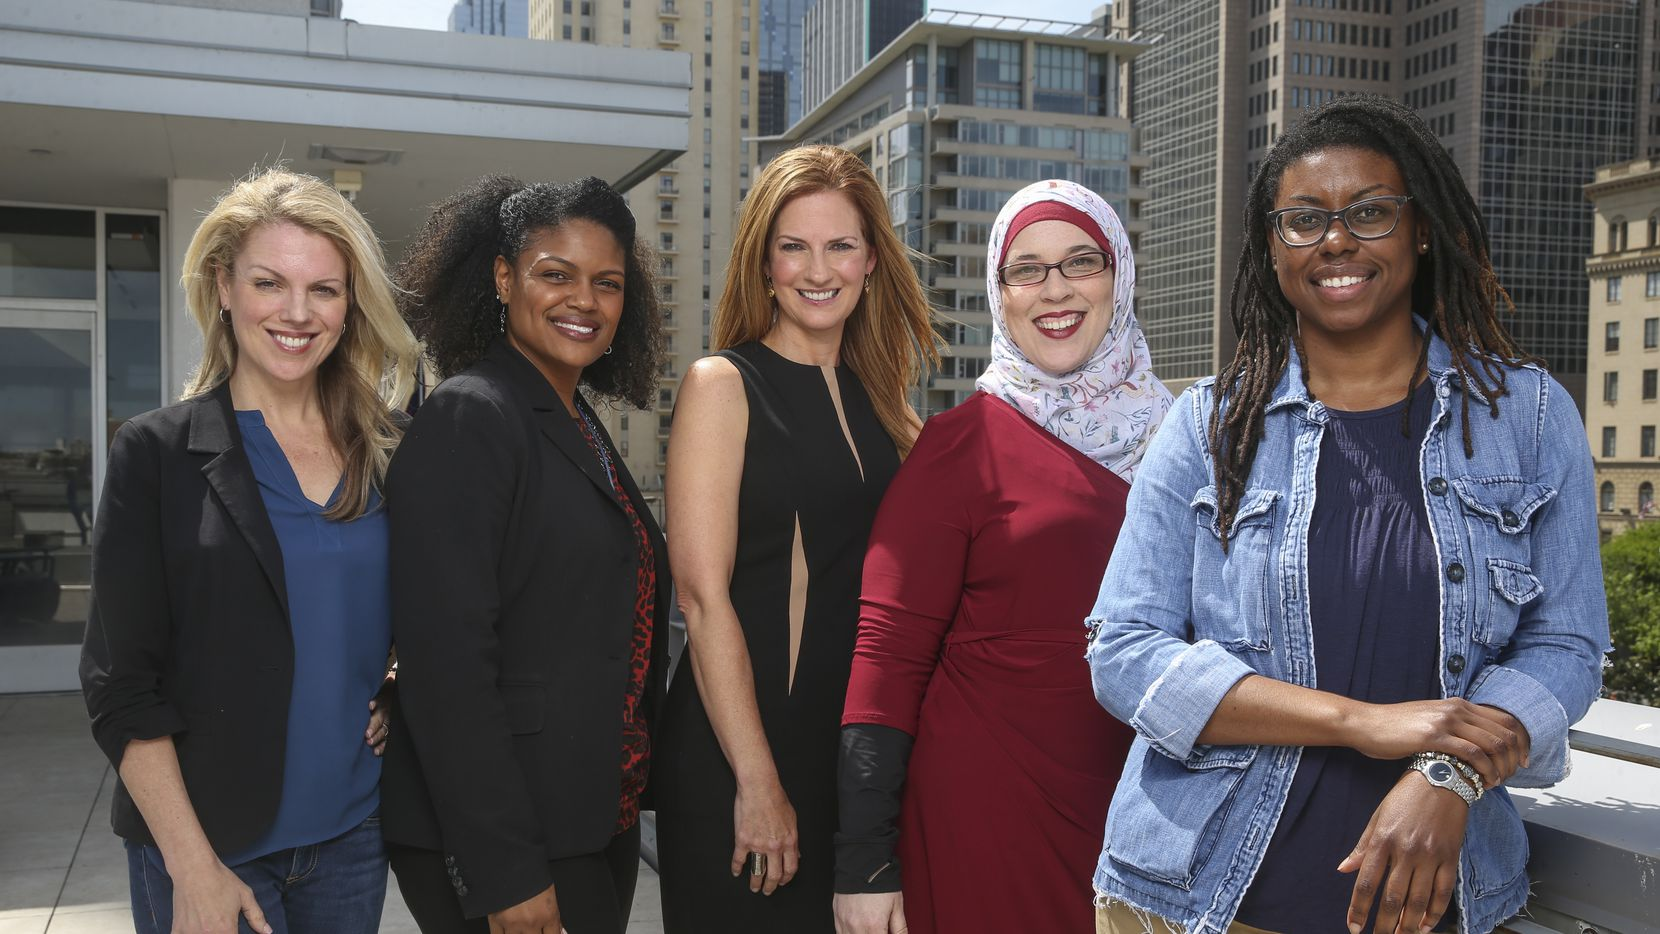 Left to right, Anna Clark,  Yulise Waters, Michelle Kinder, Alia Salem, and Joli Robinson, the peer coaches of the 2019 Public Voices project in Dallas.